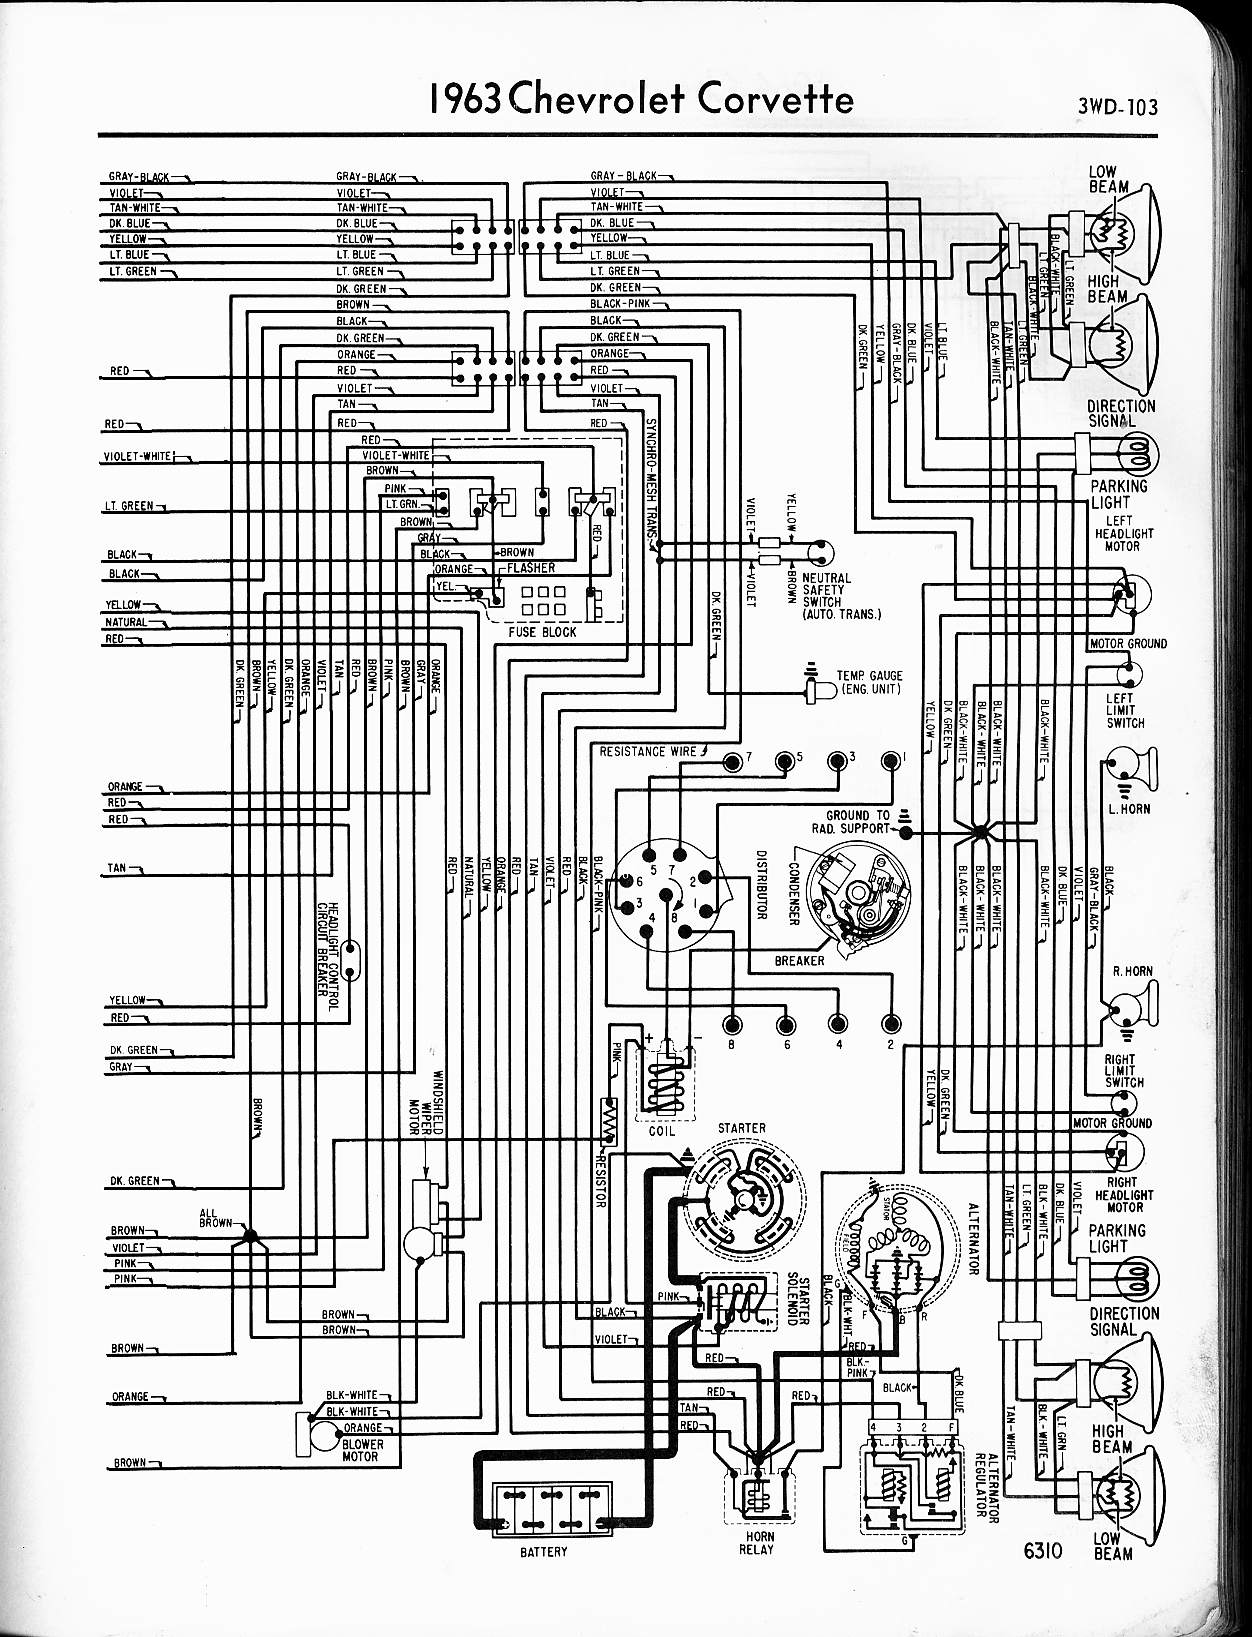 MWireChev63_3WD 103 57 65 chevy wiring diagrams 66 Corvette at mr168.co